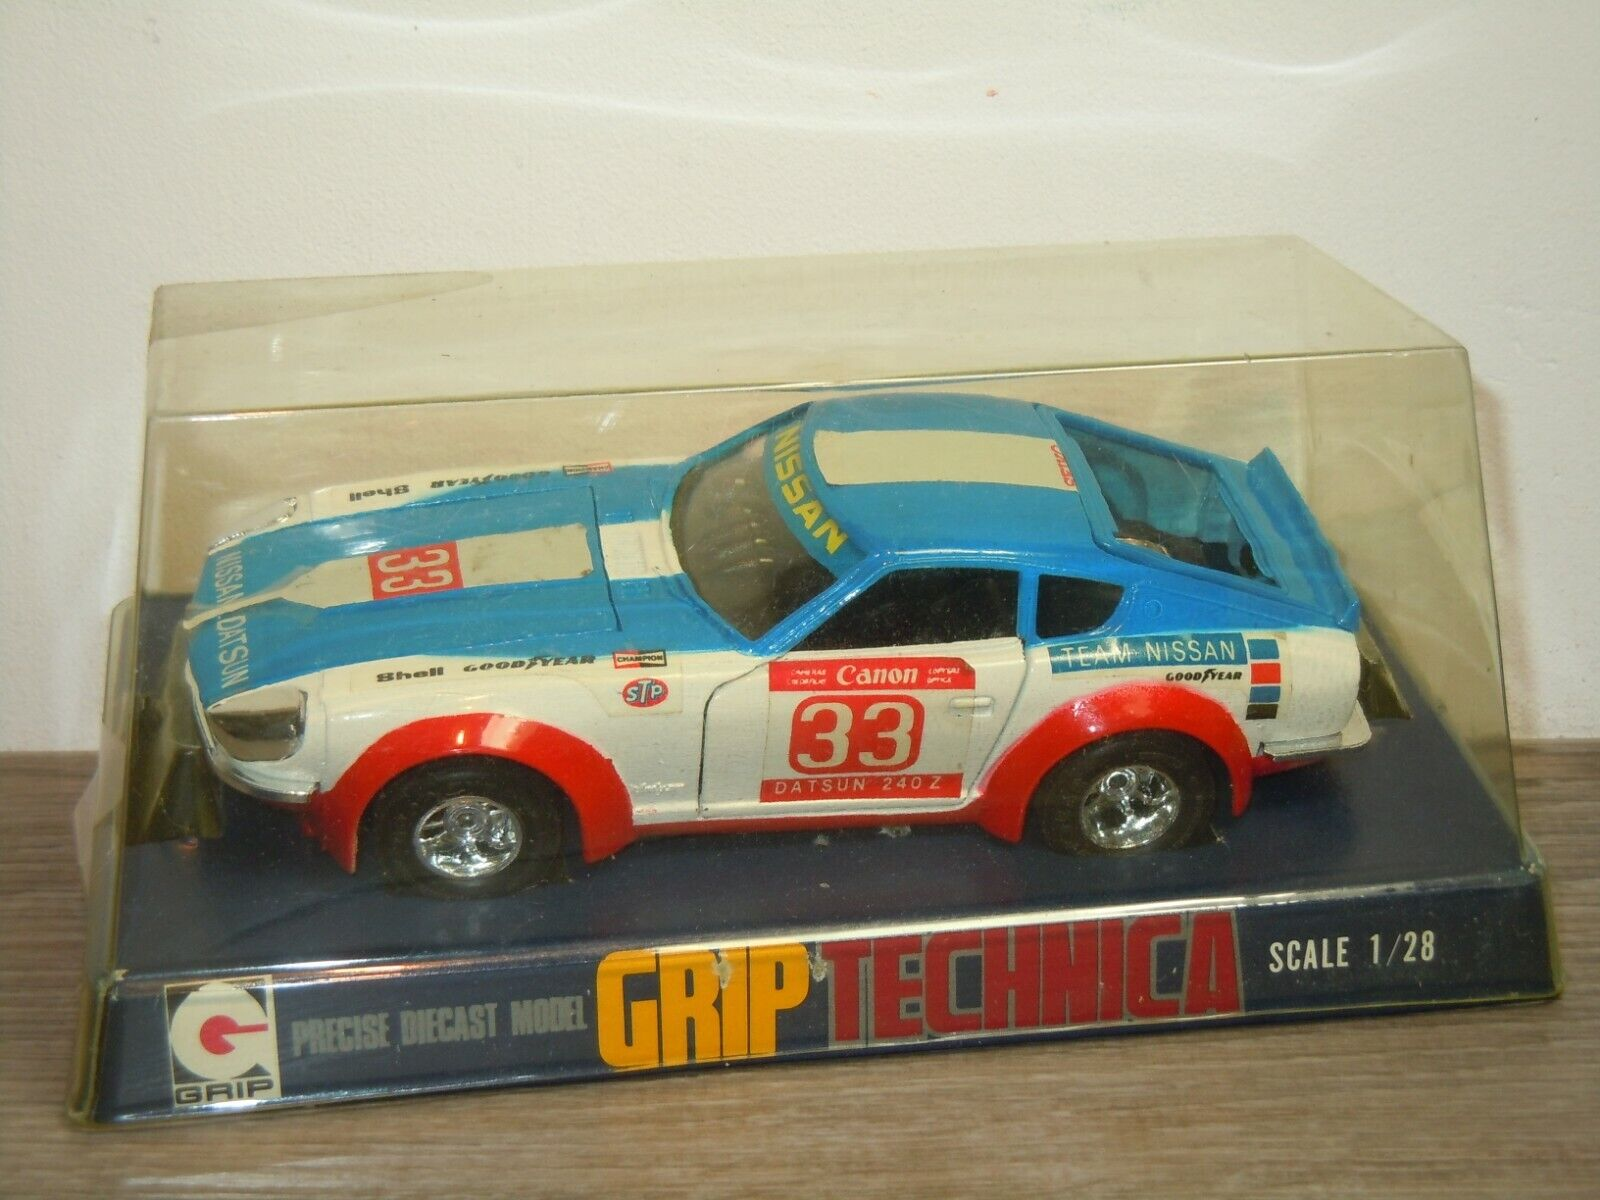 Datsun 240Z - Grip Technica Japan 1 28 in Box 39972